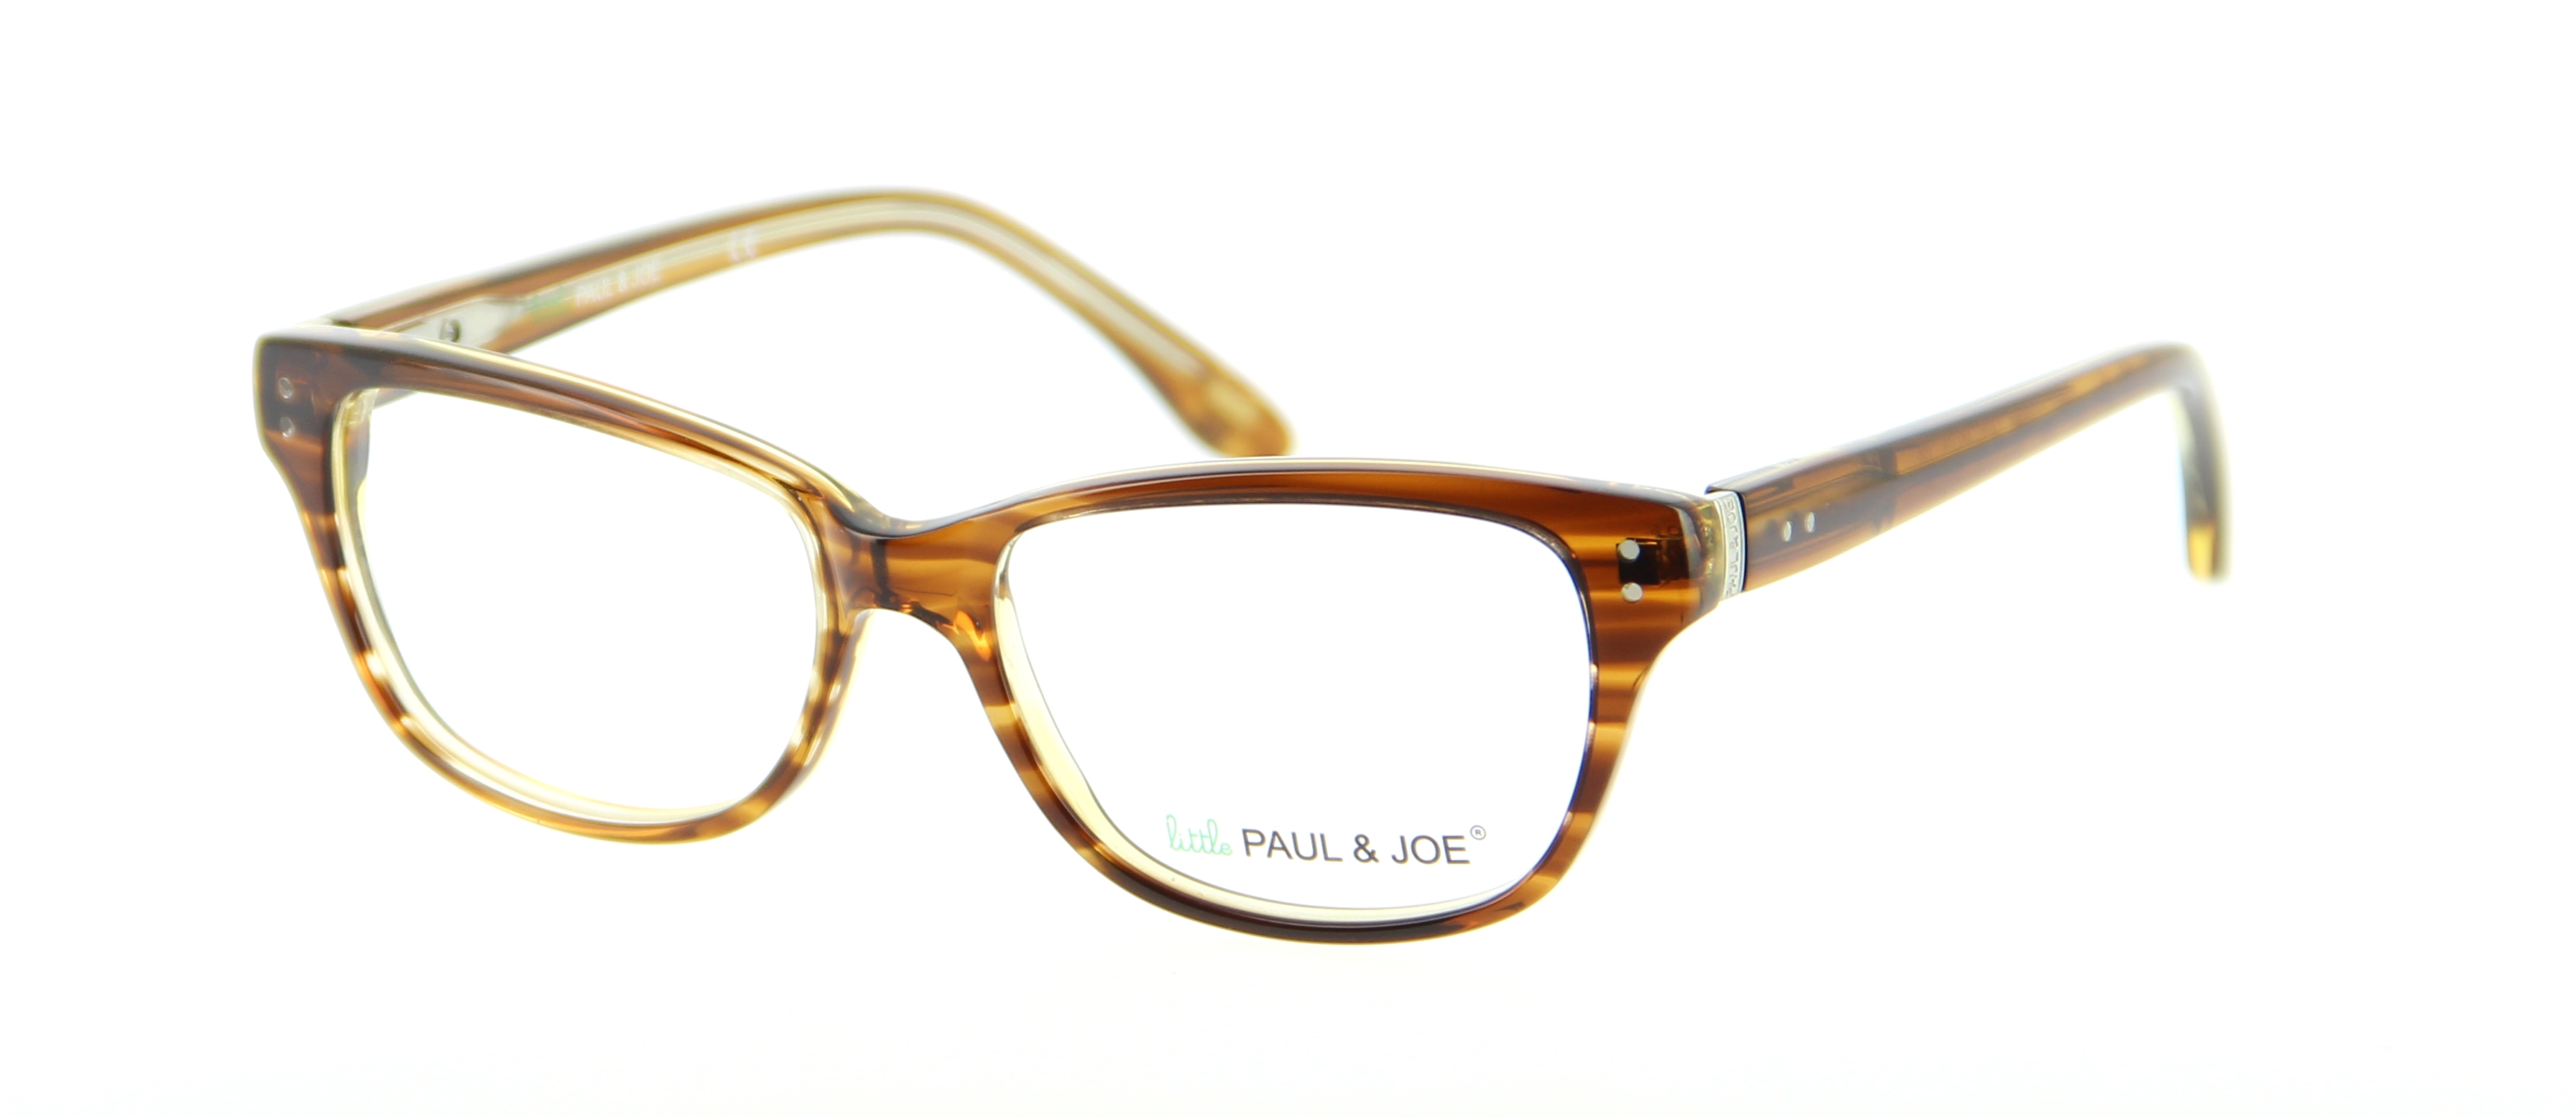 Eyeglasses PJ MILKY03 E208 48/15 PAUL & JOE